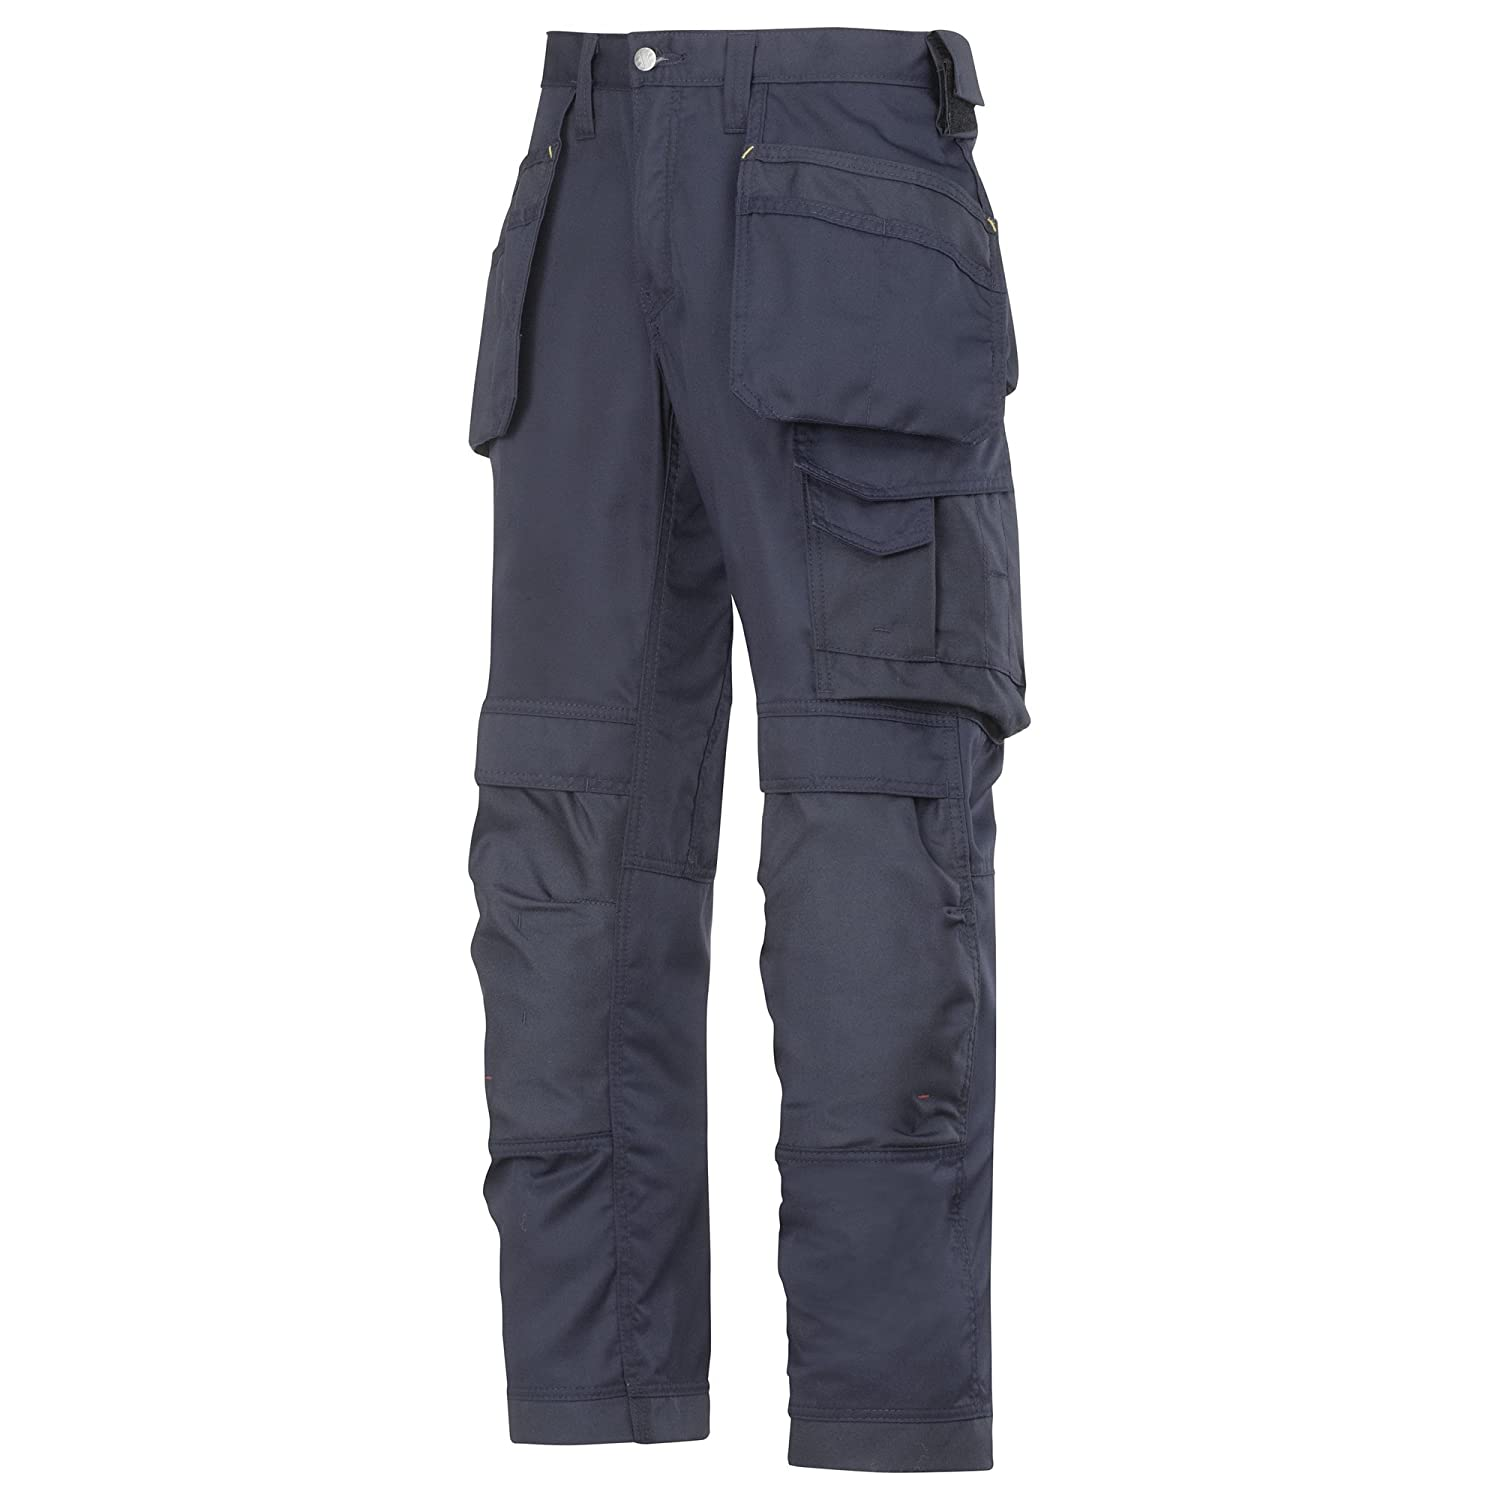 Snickers Mens Cooltwill Workwear Trousers/Pants